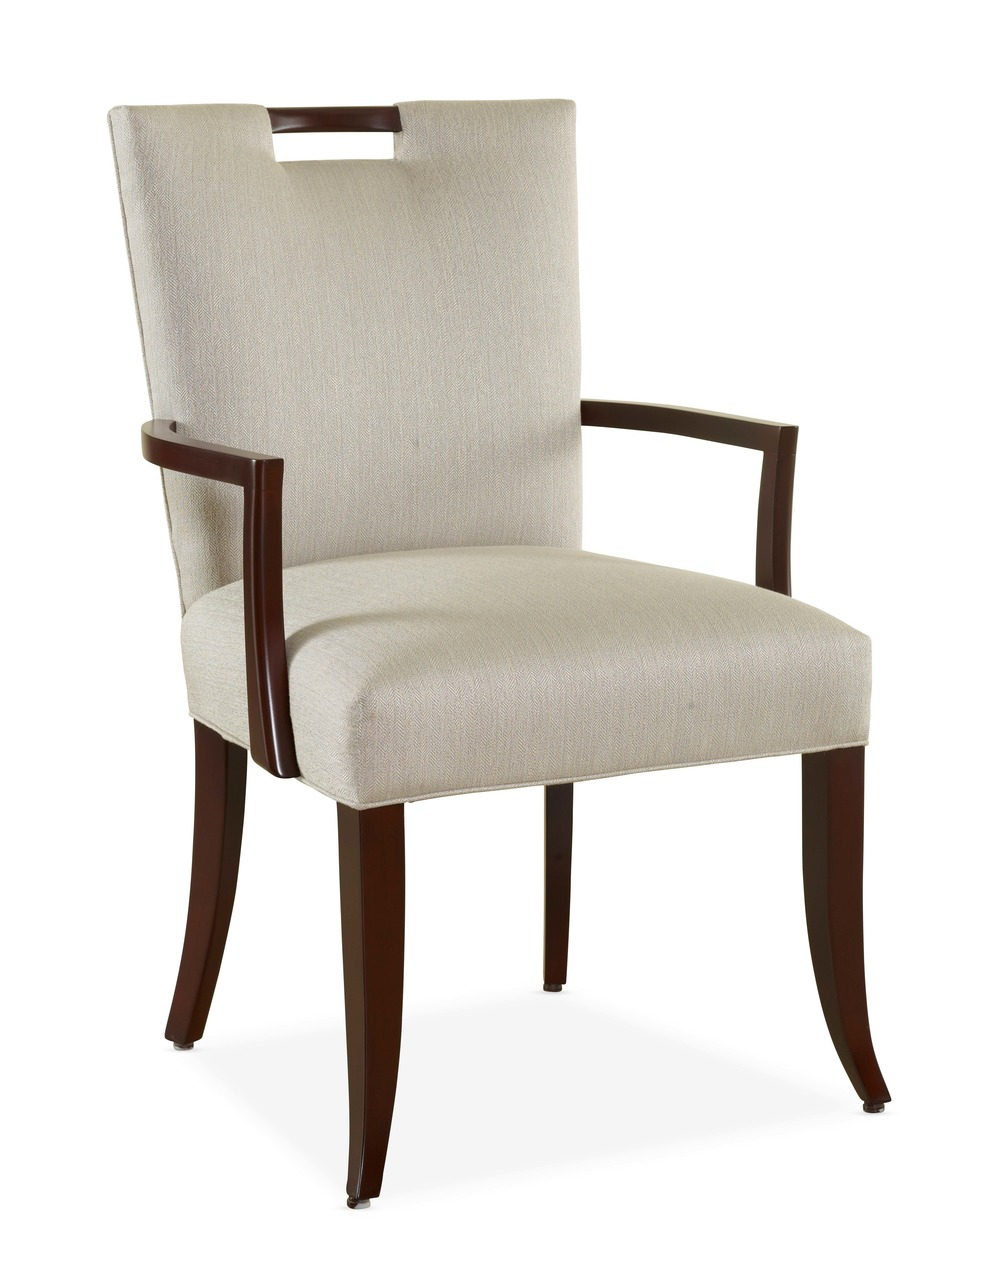 Designmaster Furniture - Darby Arm Chair